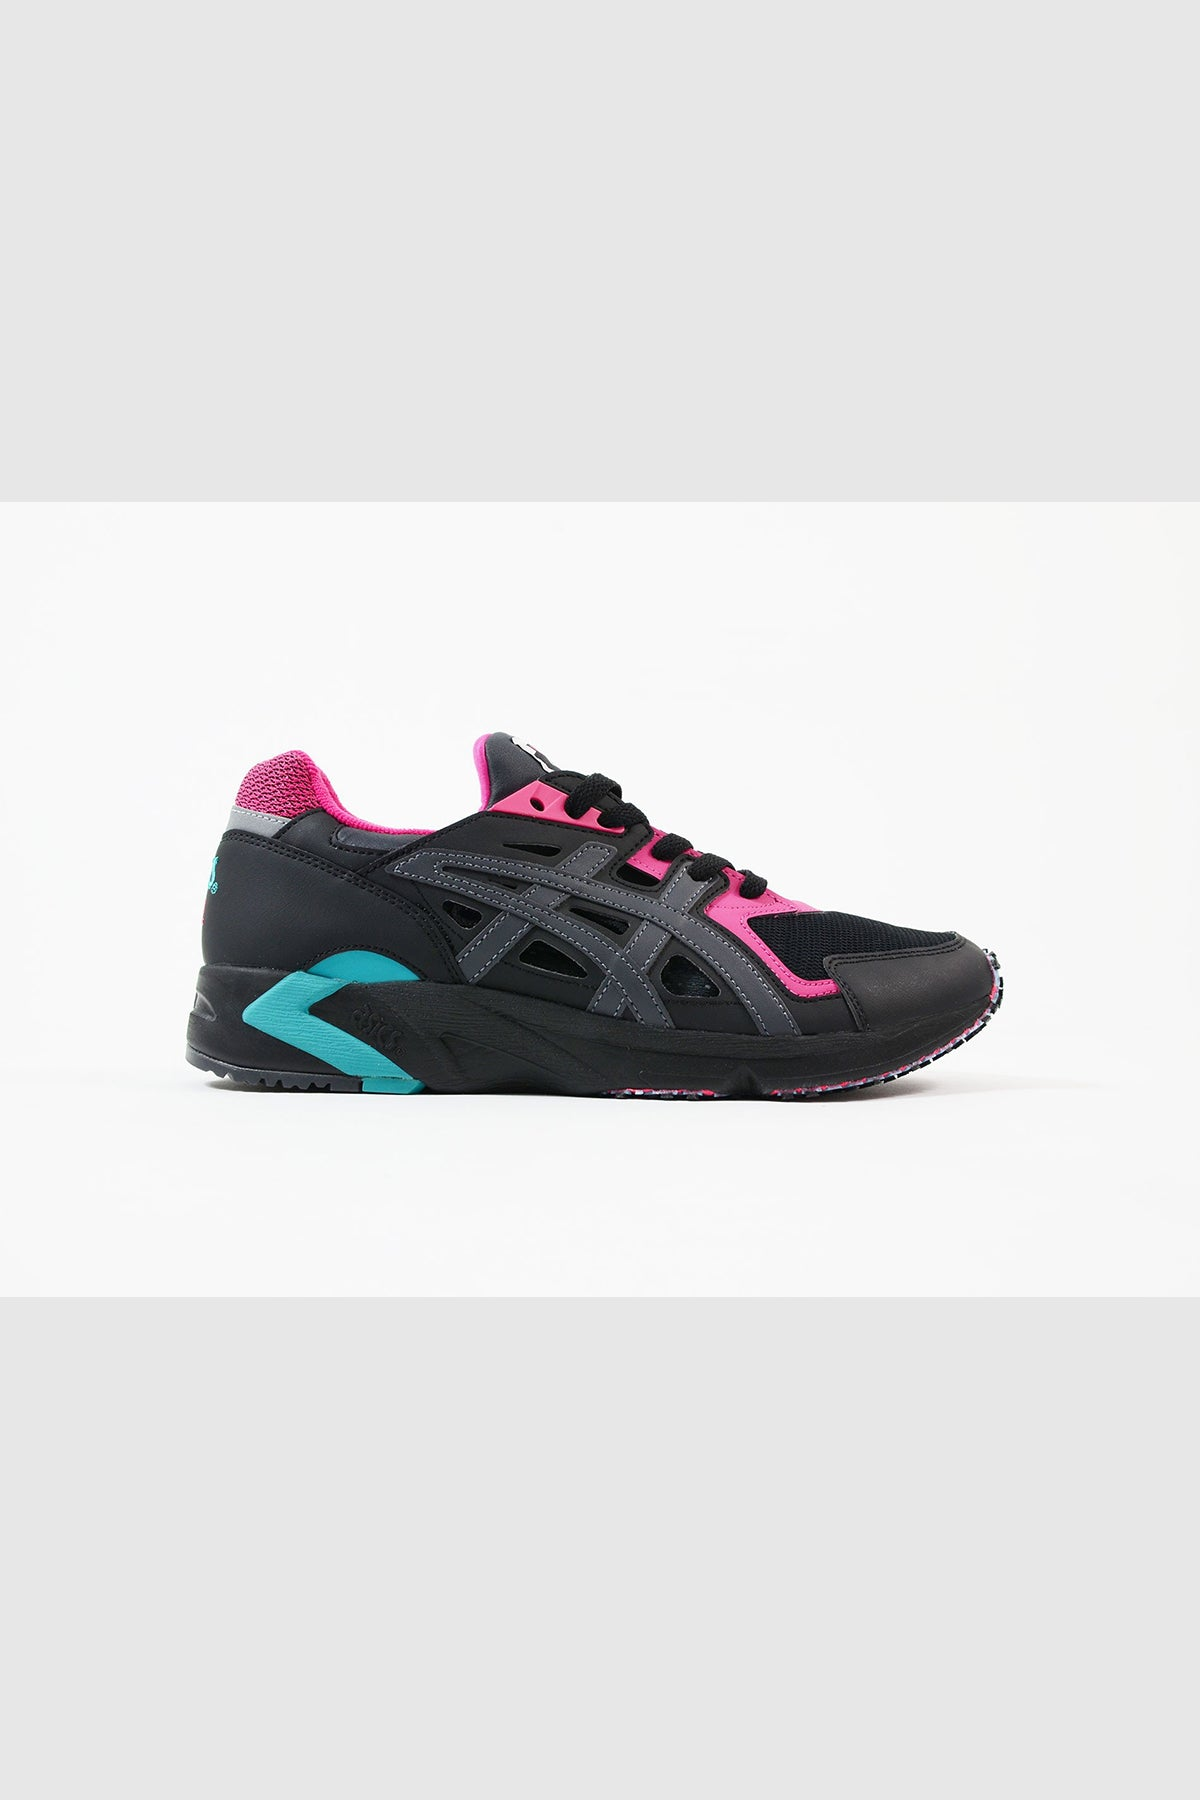 Asics - Gel-Ds Trainer OG (Black/Dark Grey)